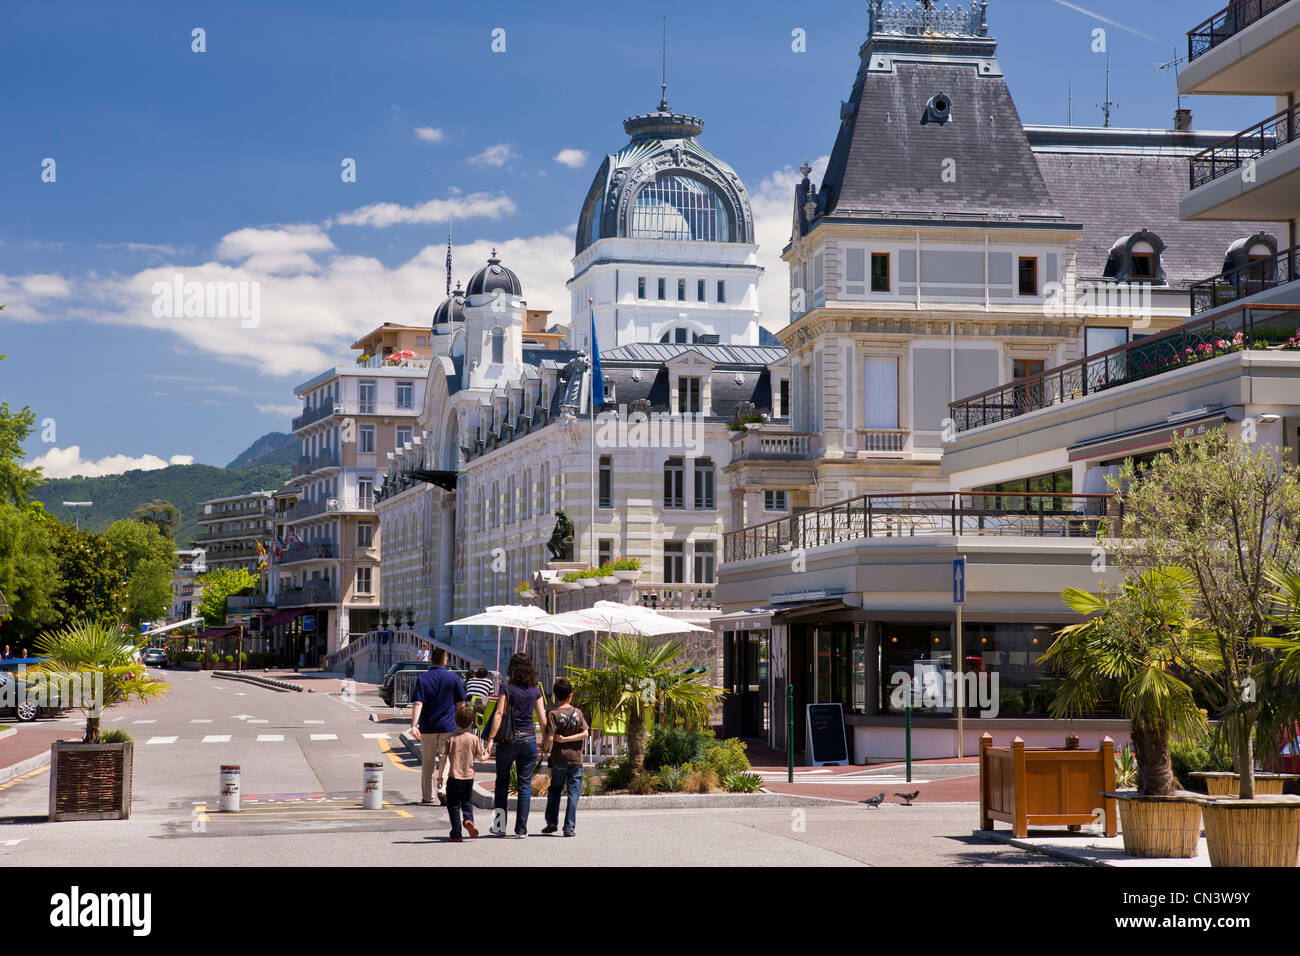 france haute savoie chablais evian les bains the city hall and le stock photo royalty free. Black Bedroom Furniture Sets. Home Design Ideas